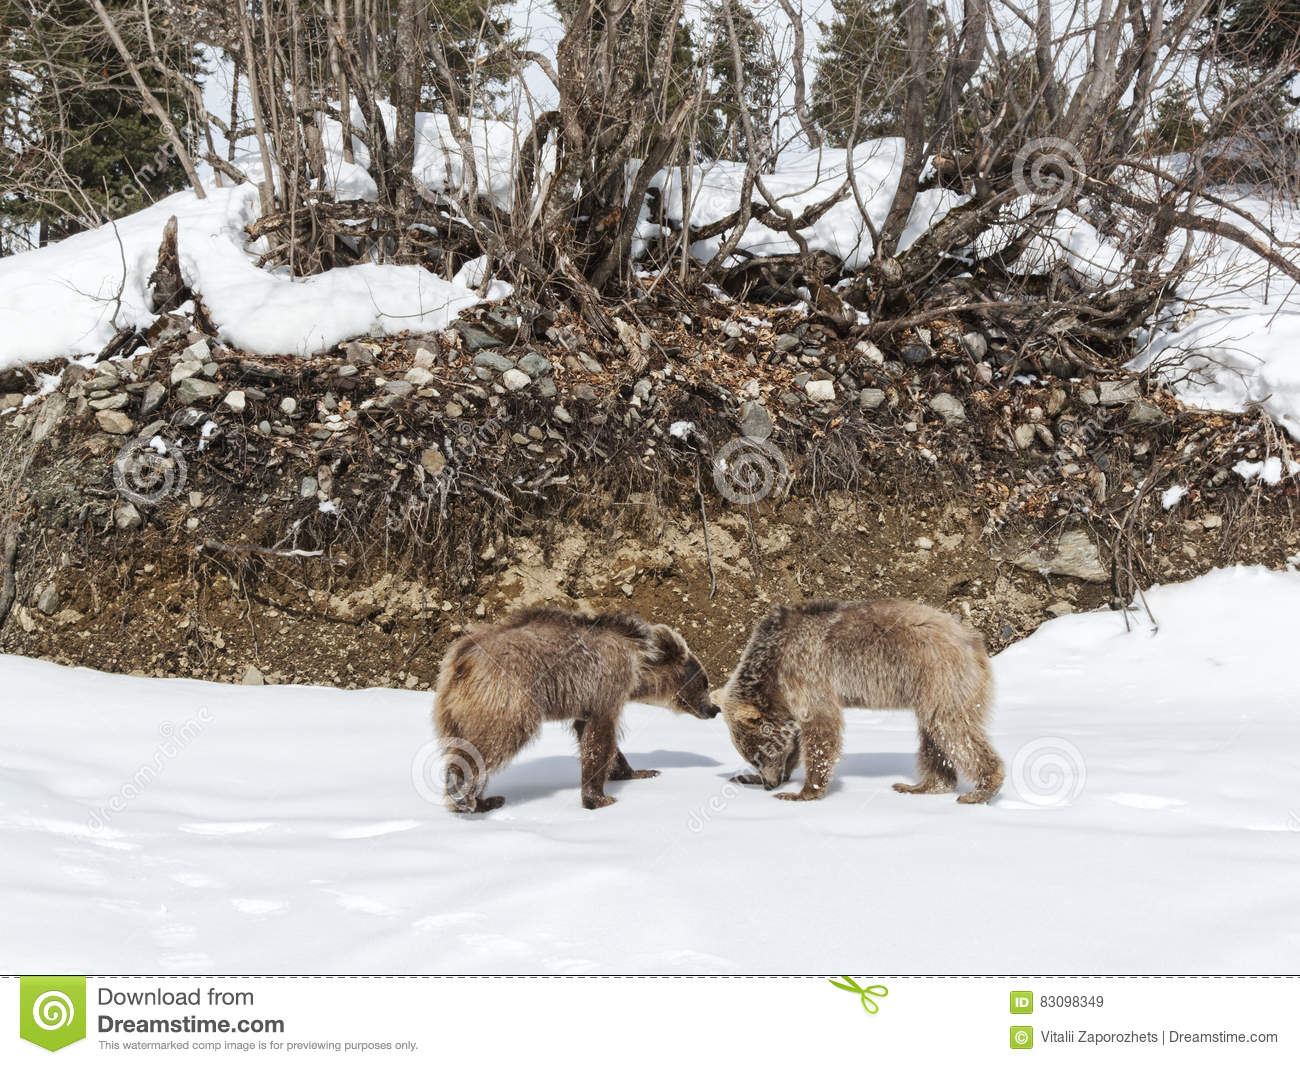 https://thumbs.dreamstime.com/z/winter-greater-caucasus-mountains-two-brown-bear-cubs-playing-georgia-country-mestia-ski-resort-svaneti-svanetia-region-83098349.jpg